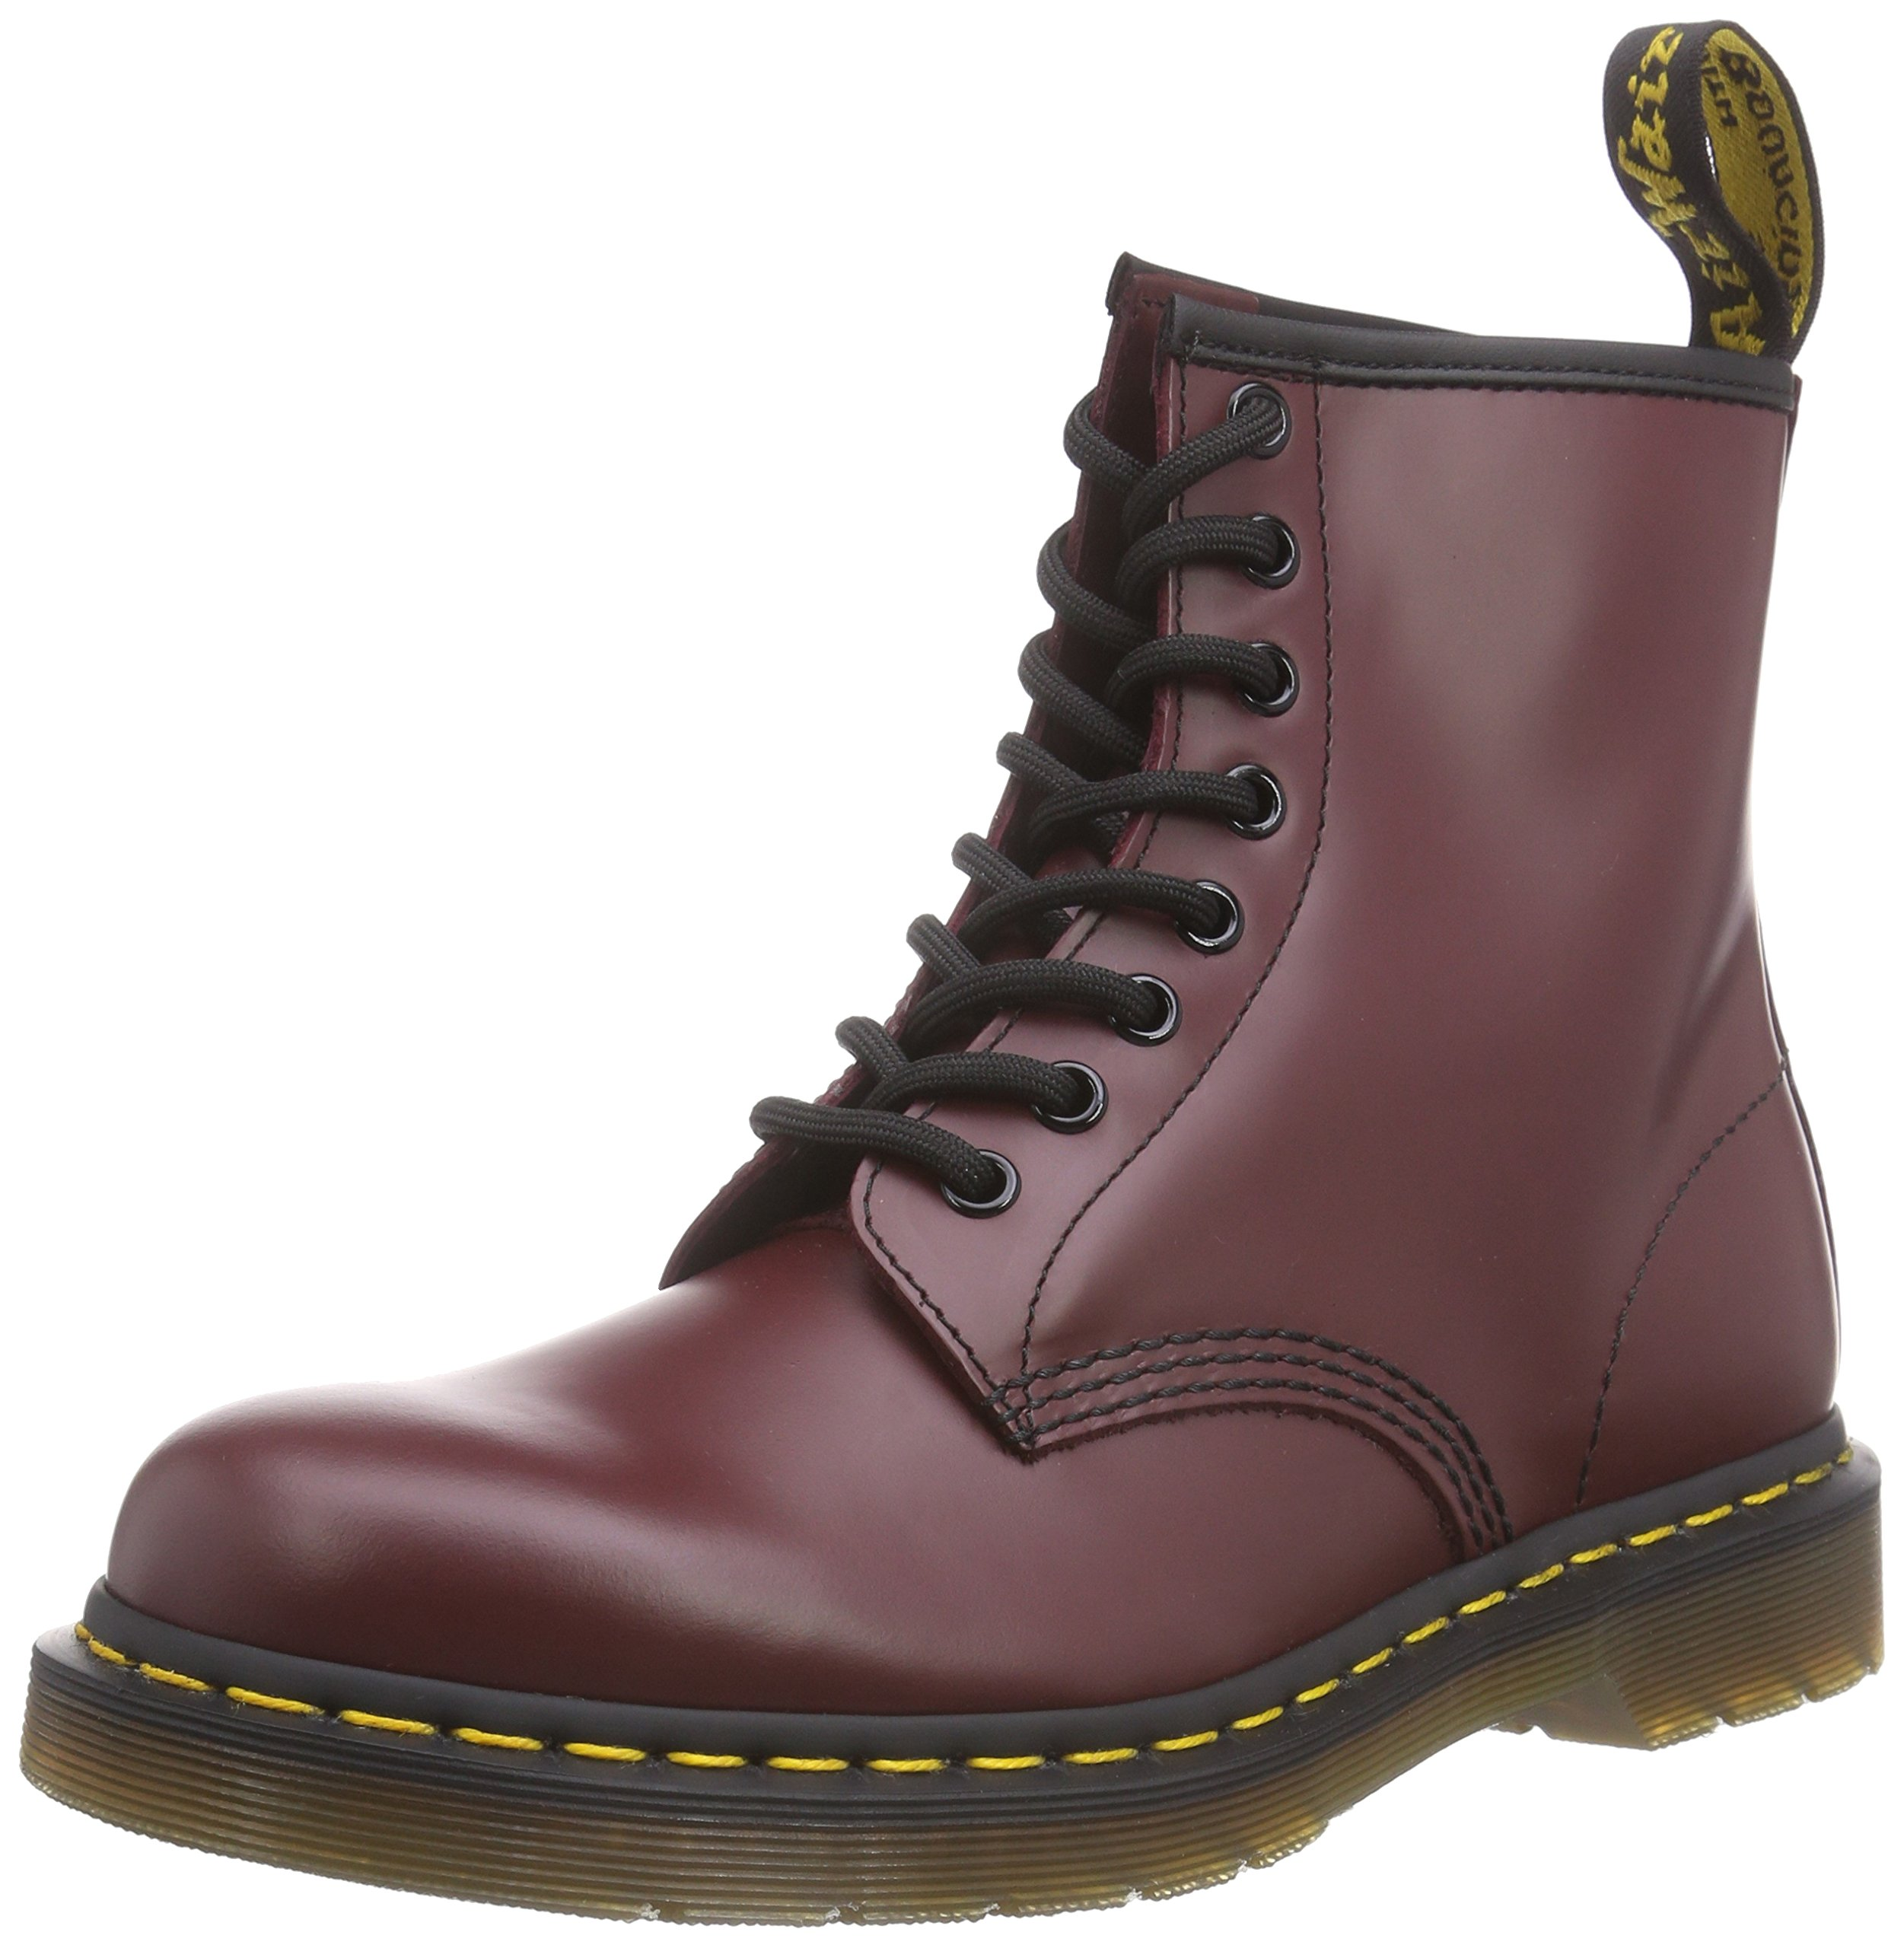 Dr. Martens 1460 Smooth - Botas Militares Unisex Adulto product image